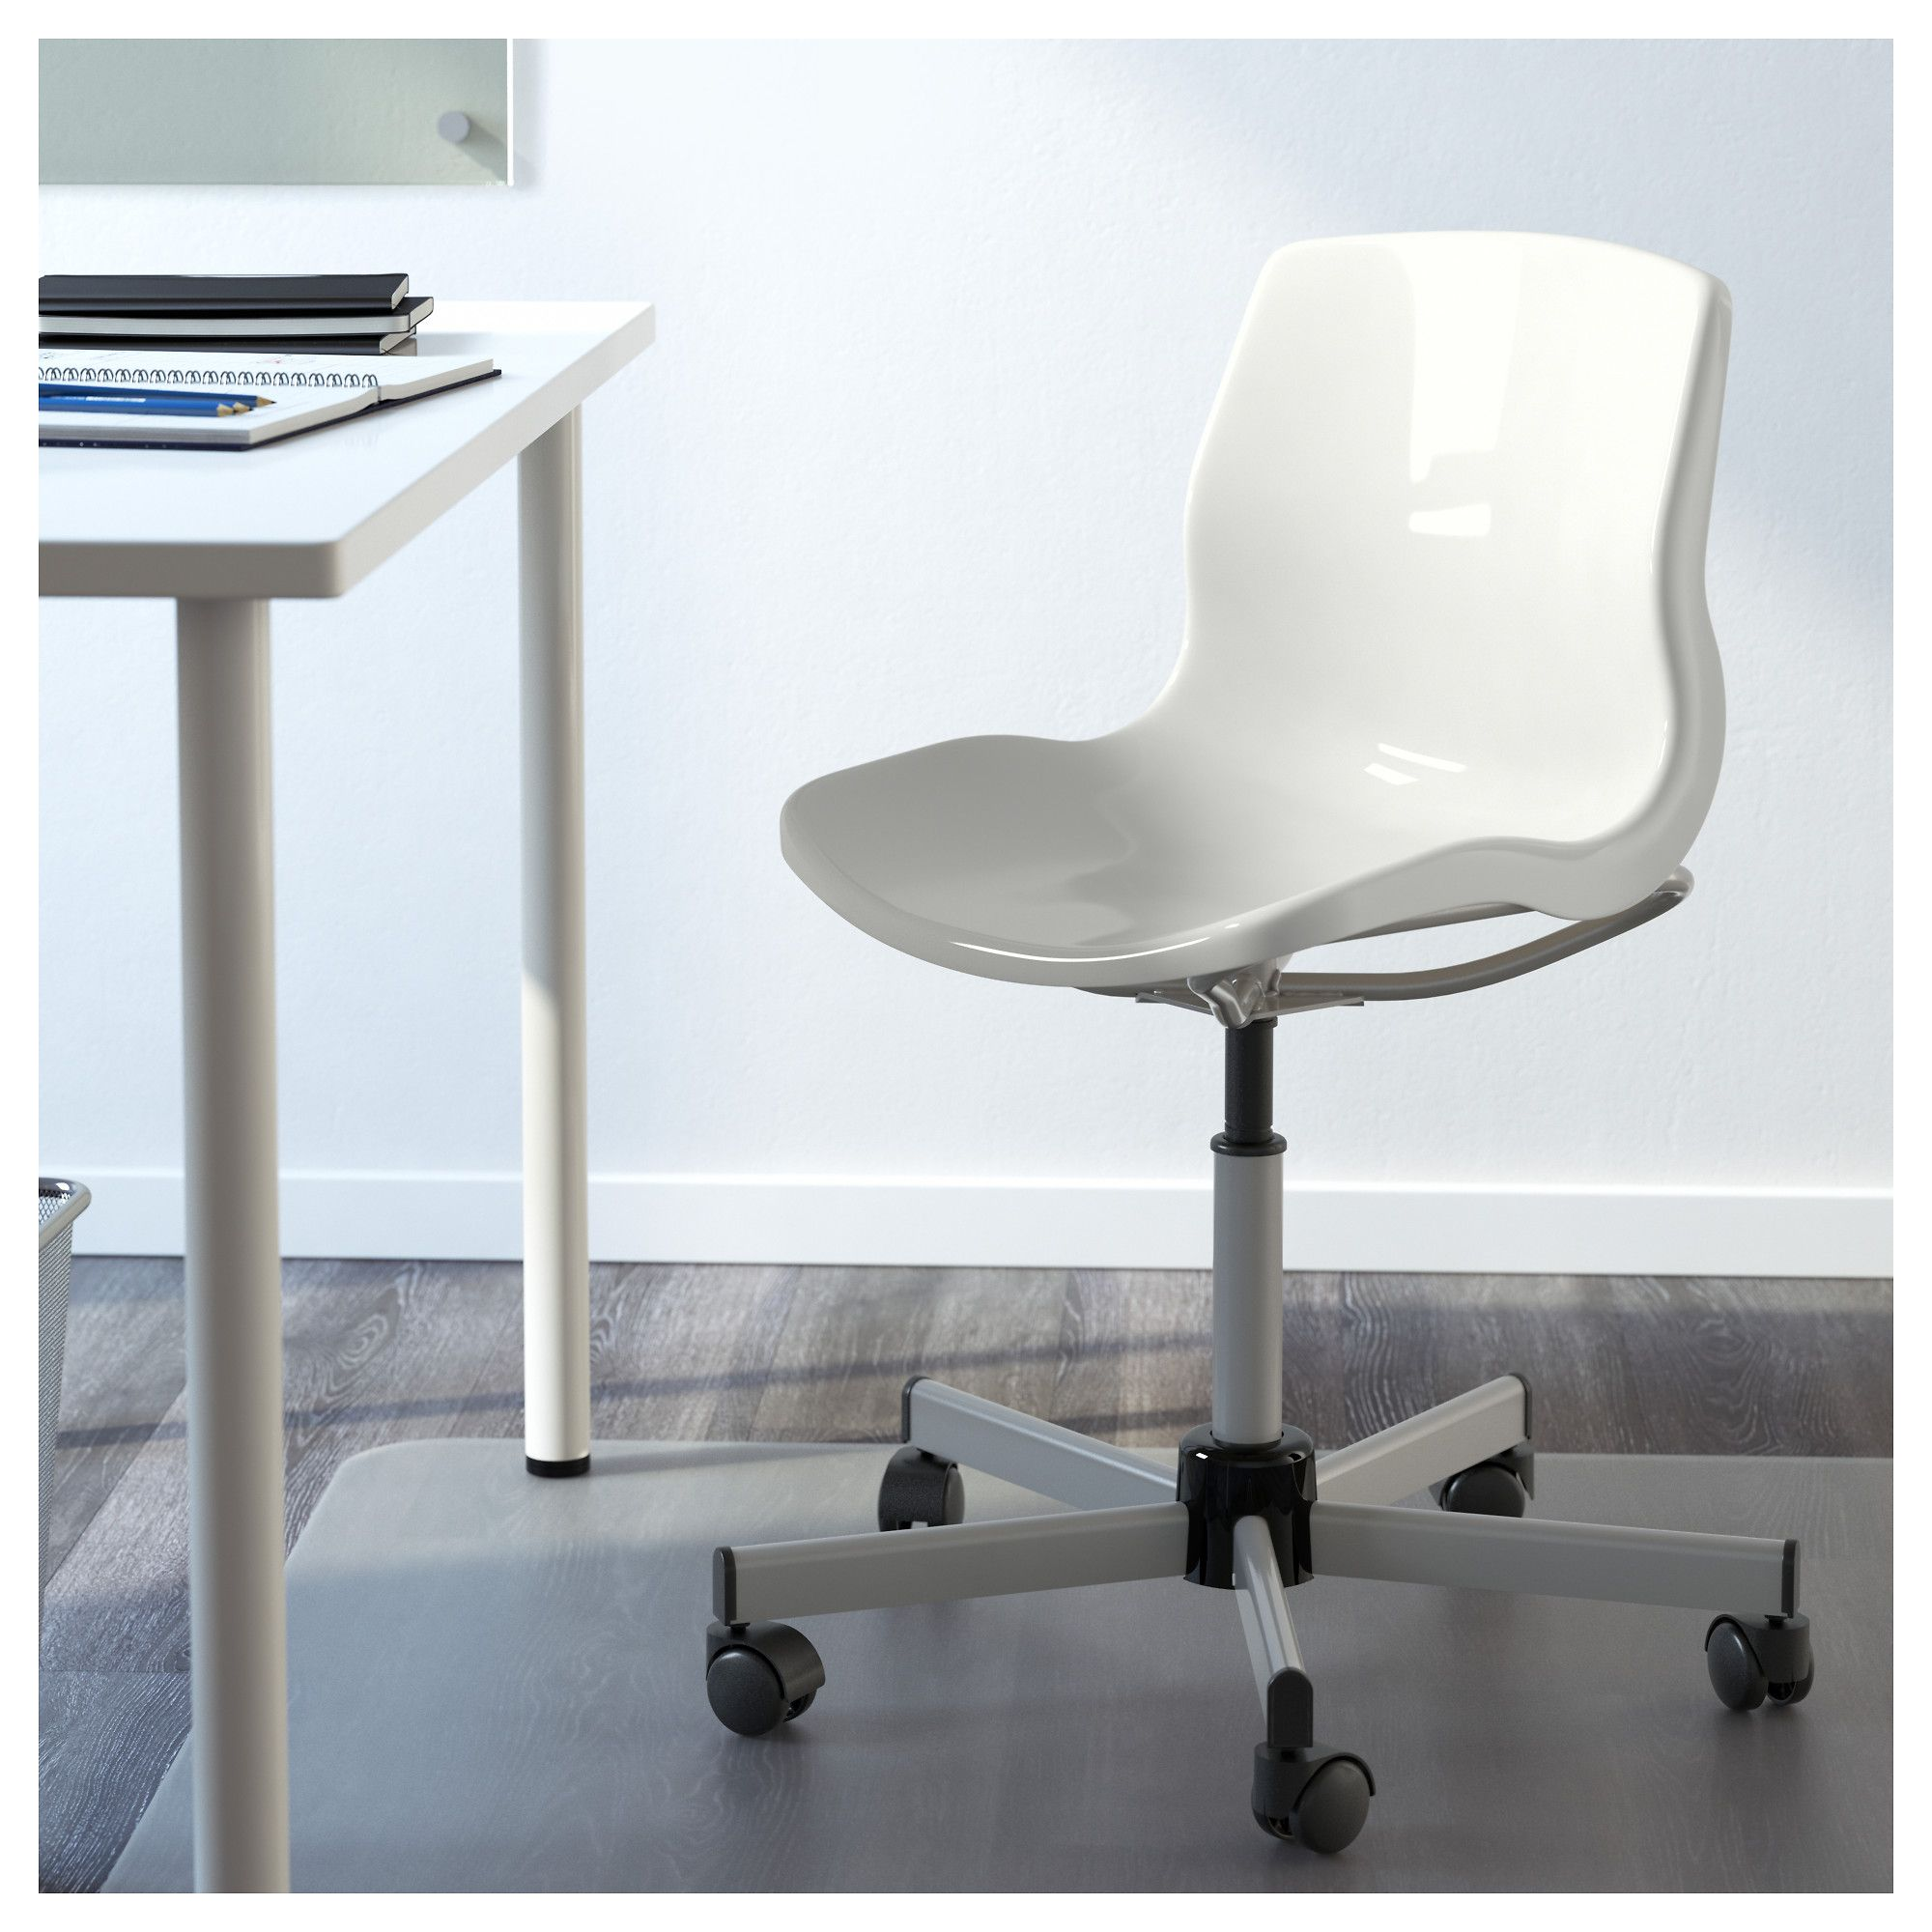 Snille Swivel Chair White Swivel Chair Desk Chair Comfy